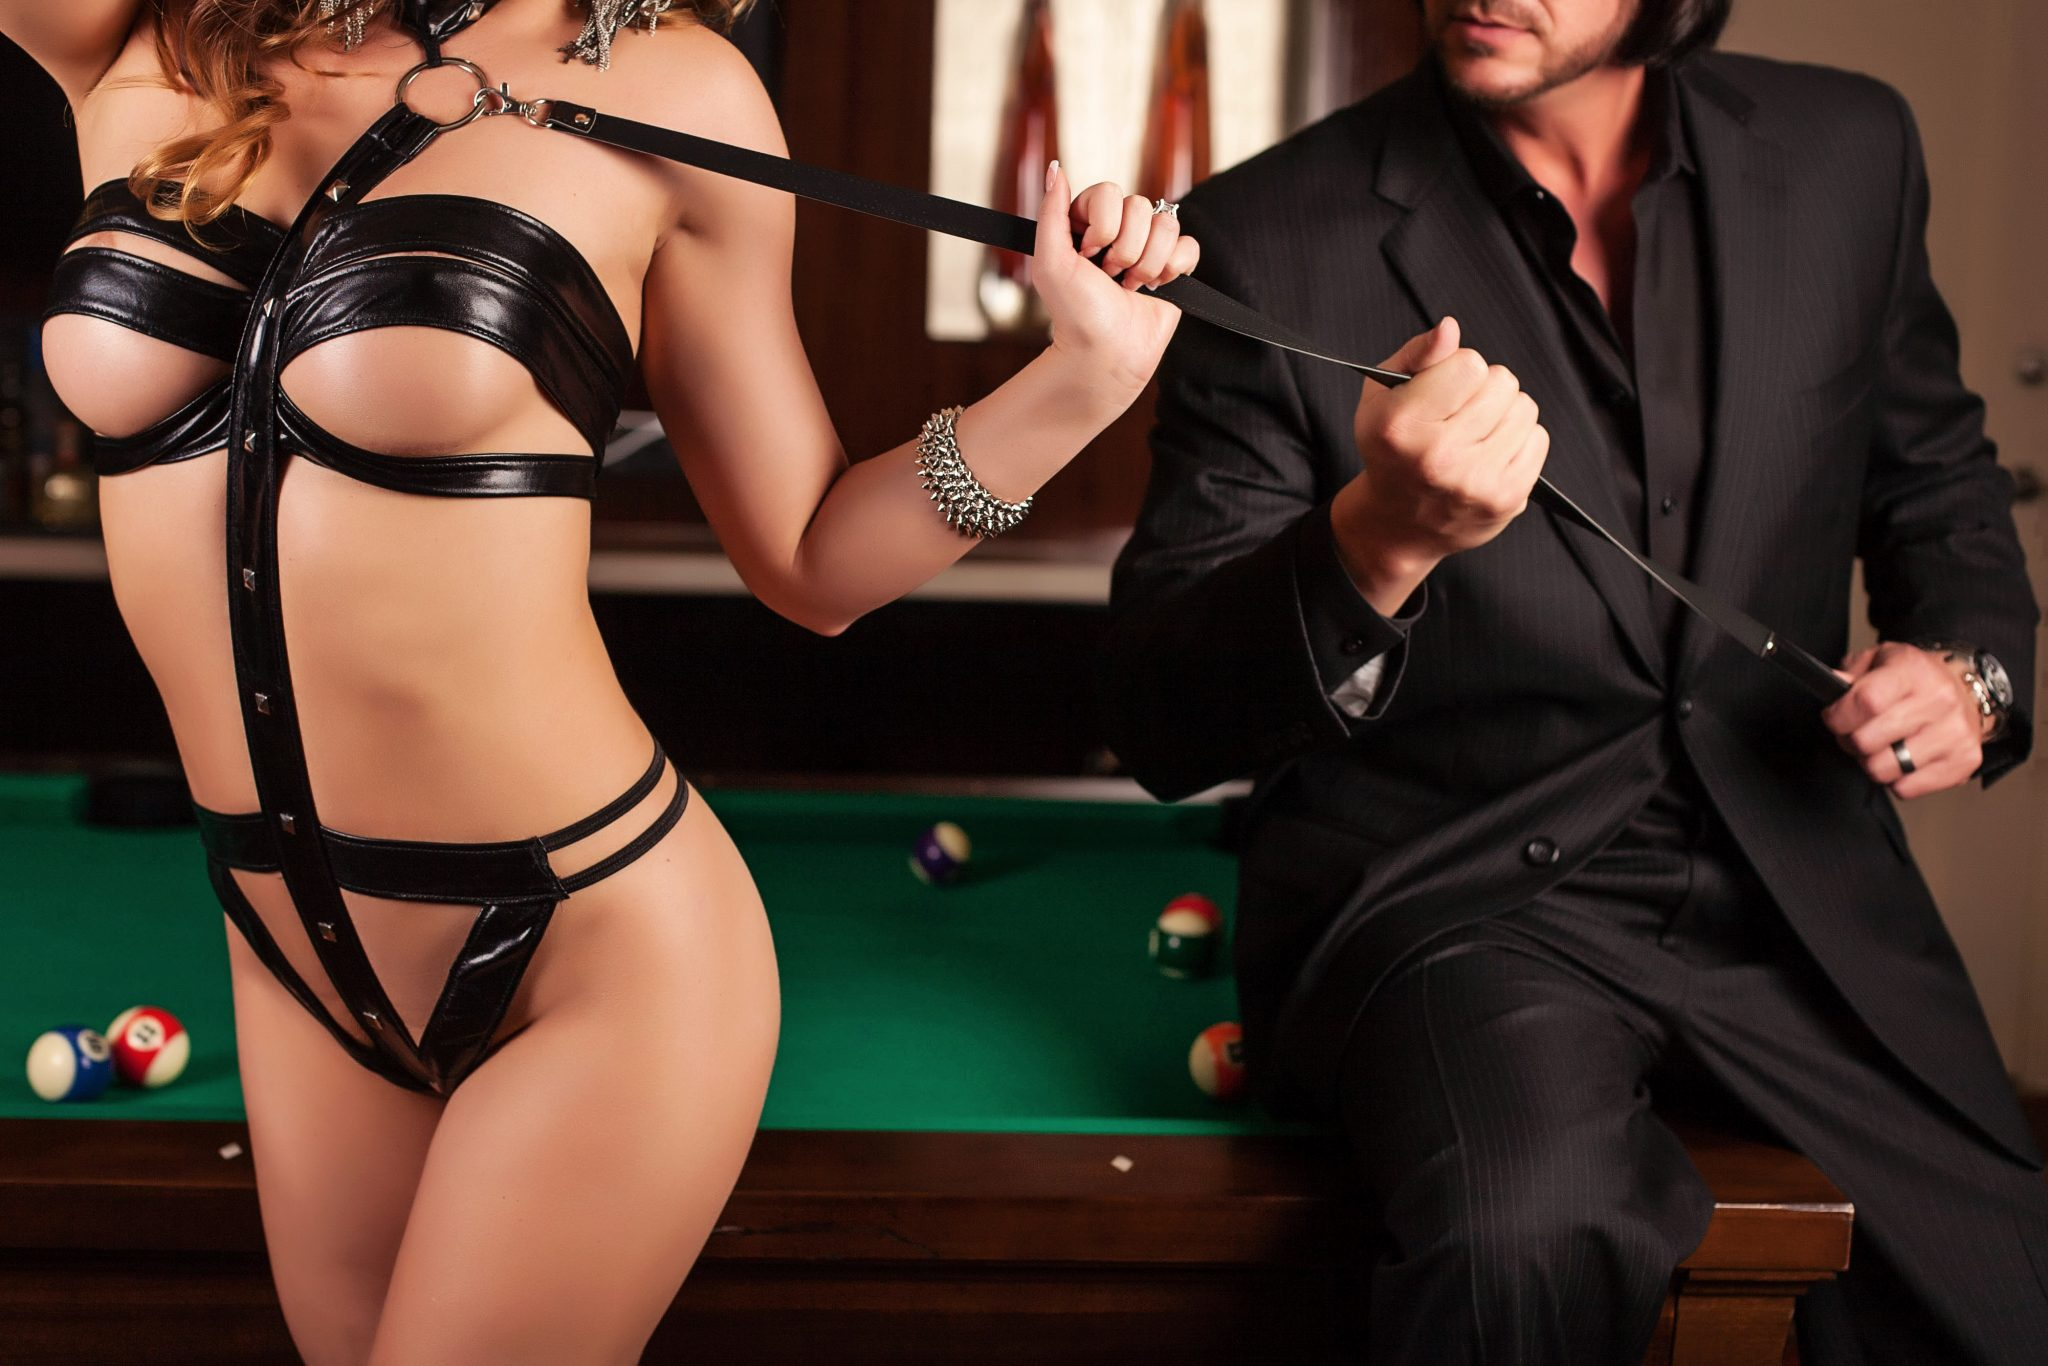 Explore your wild side with your looks at a couples boudoir session.